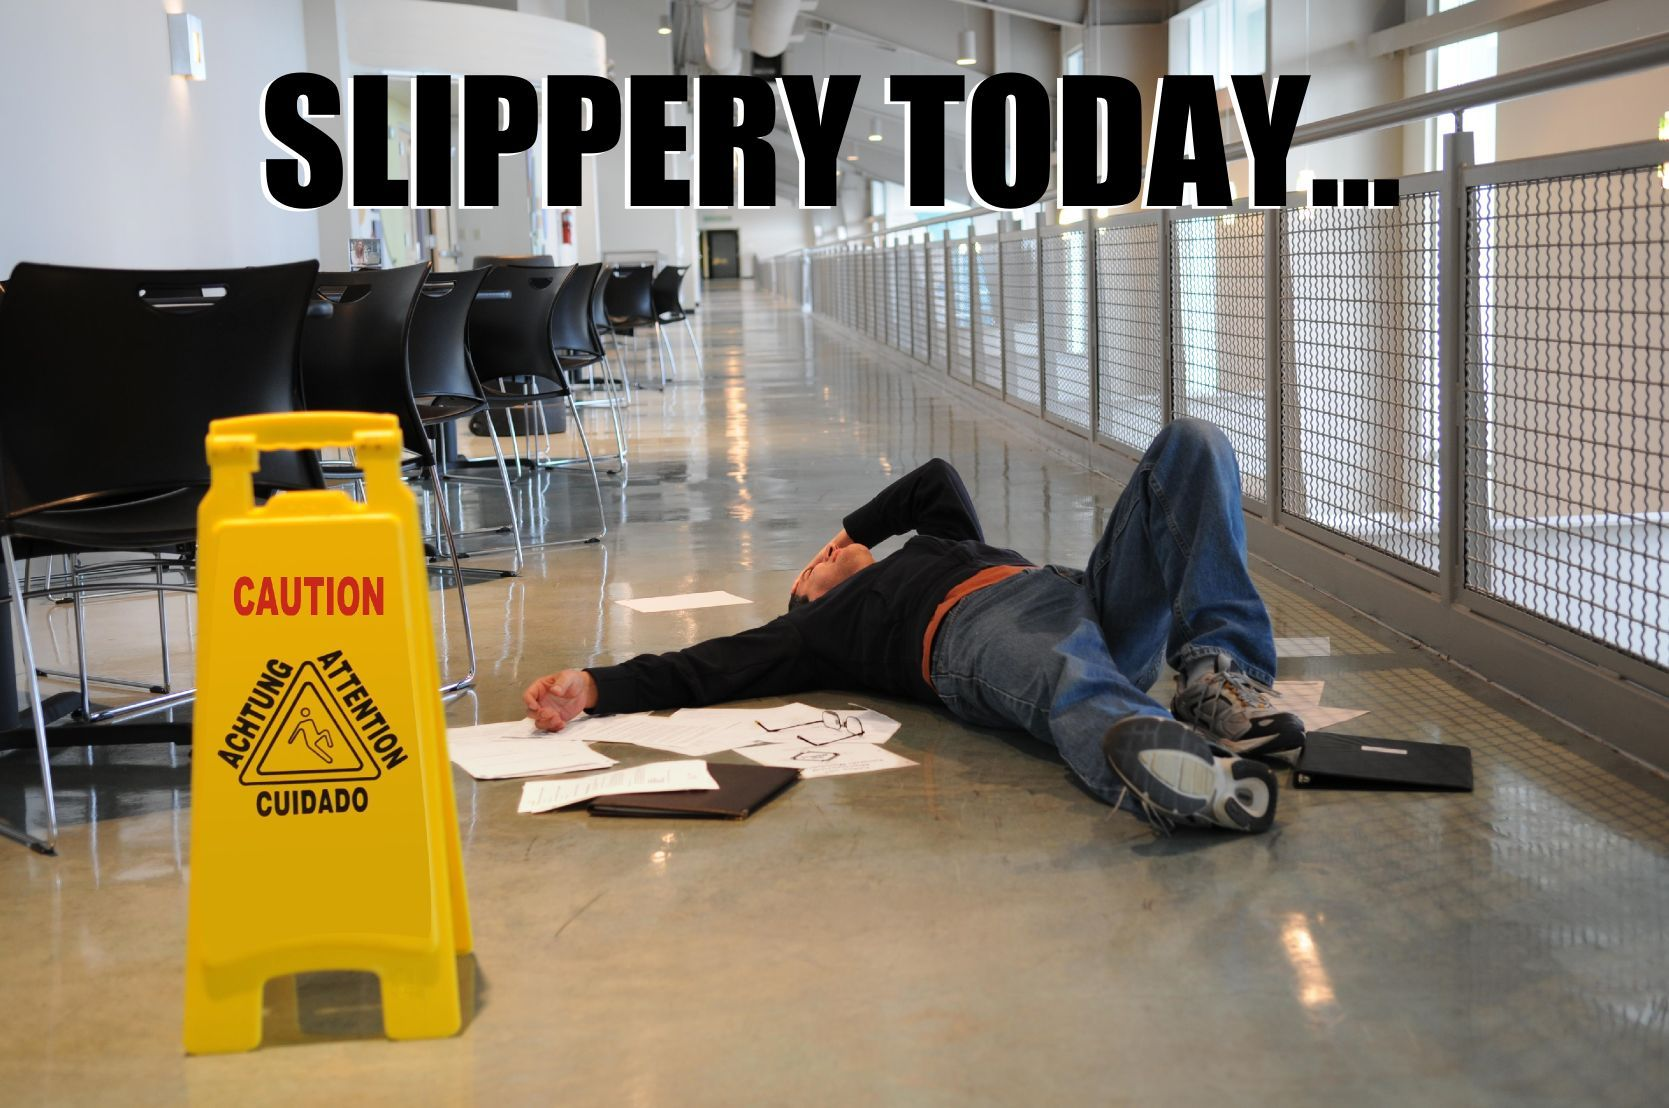 How to improve traction on your slippery office floors tiles how to improve traction on your slippery office floors tiles doublecrazyfo Gallery